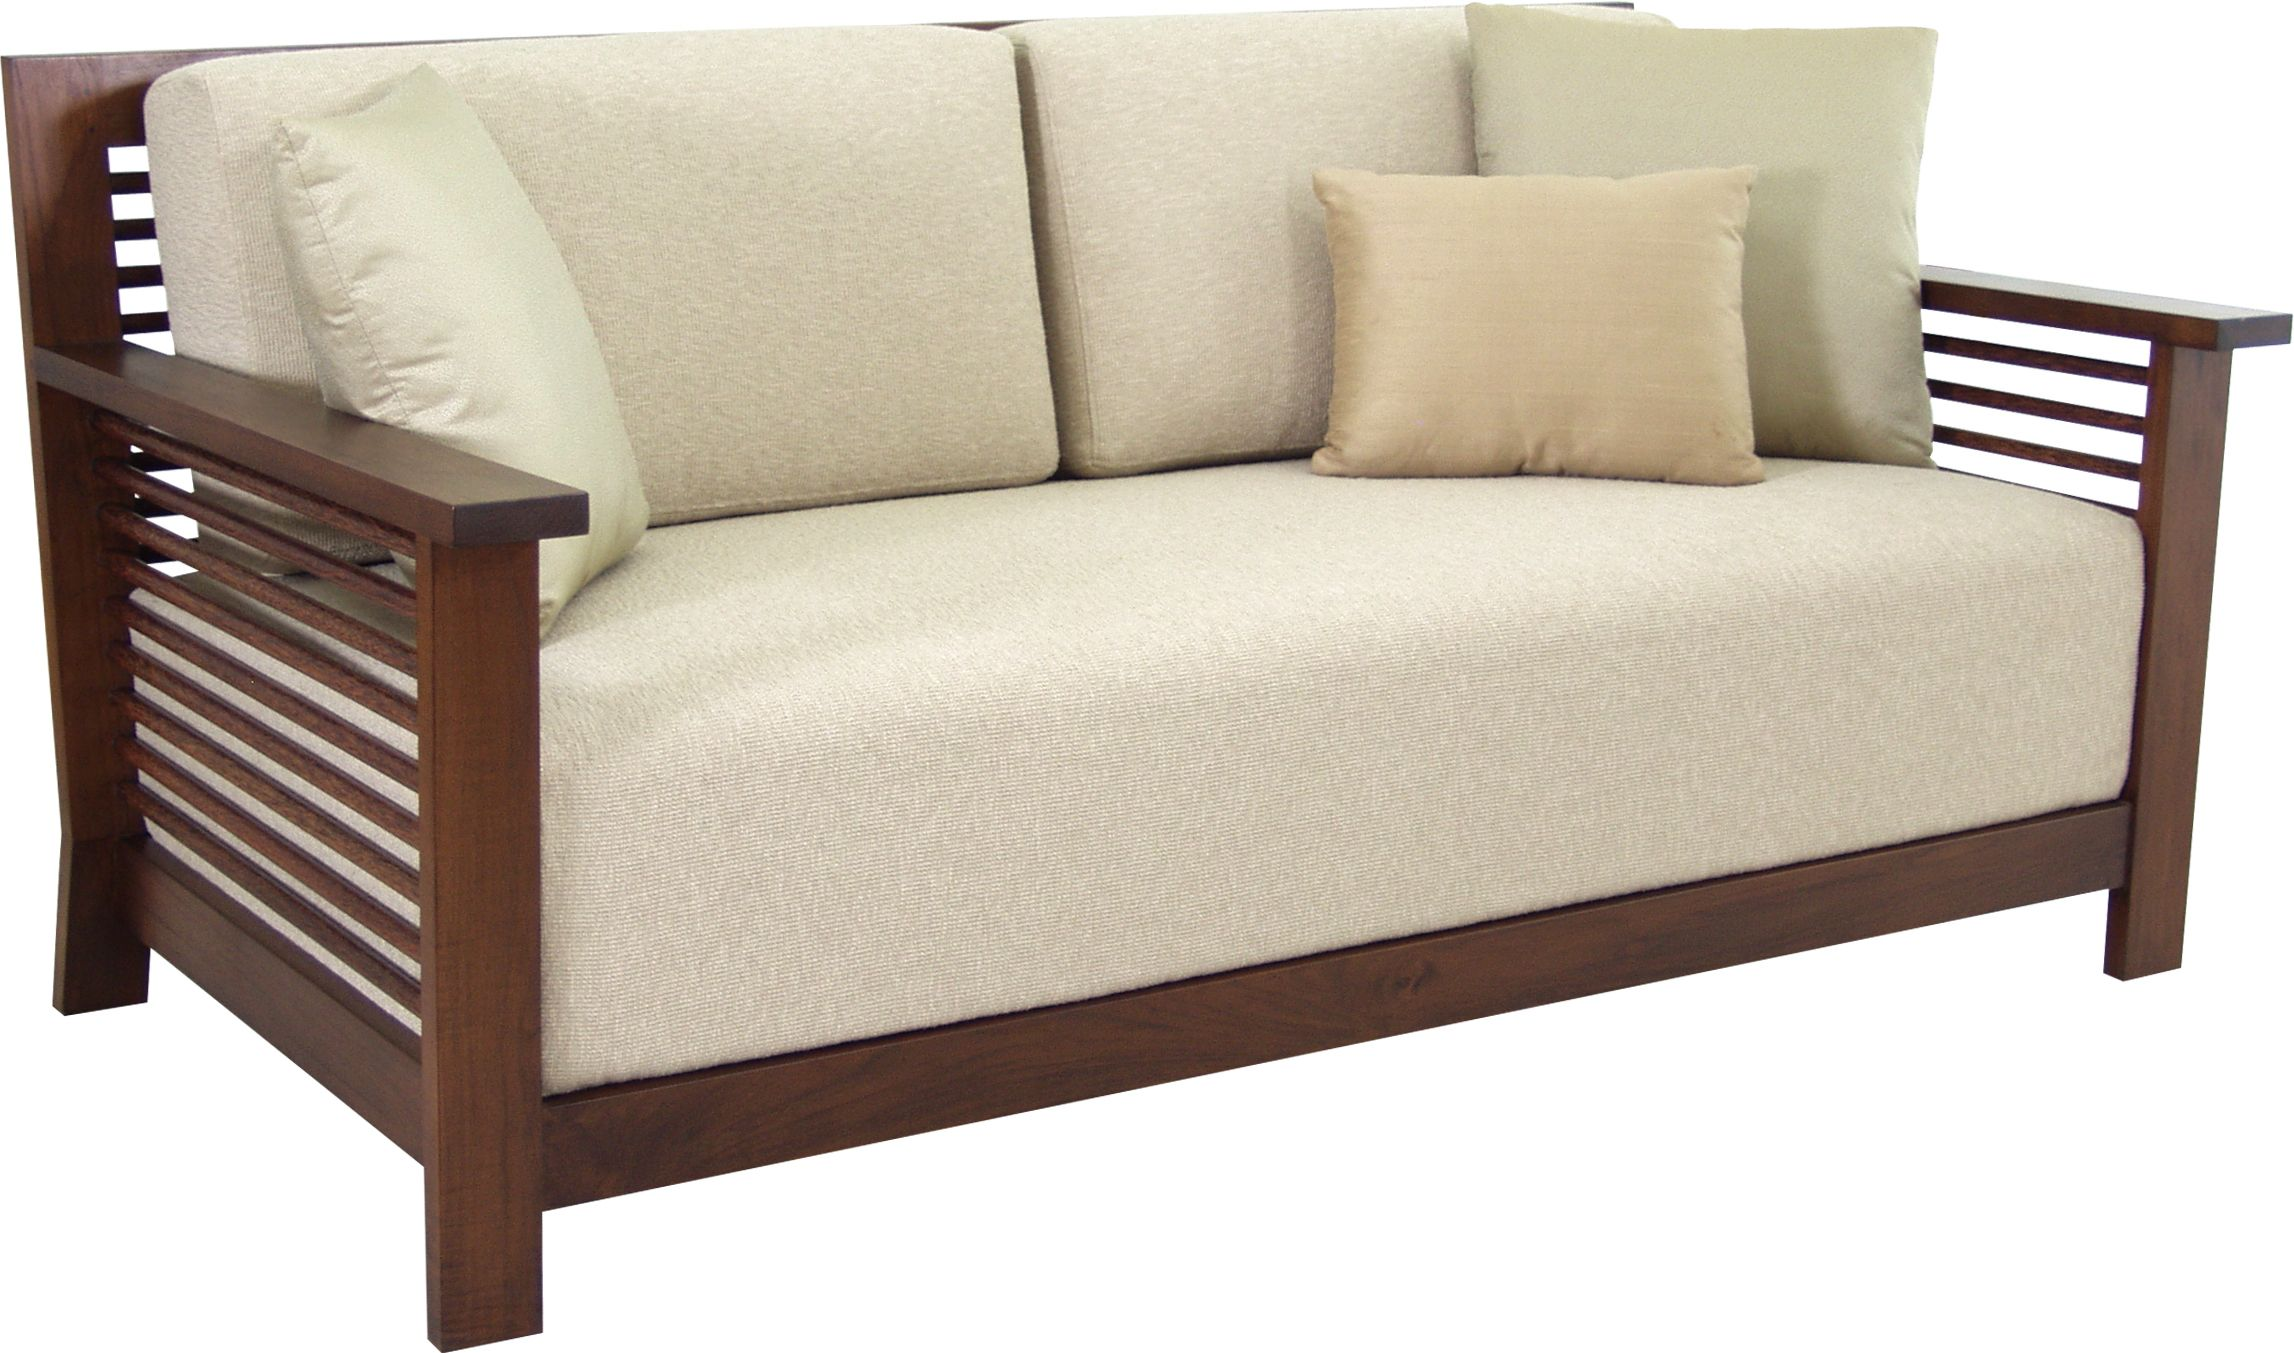 outdoor, Teak & Mahogany furniture  Sunbrella fabric , lounge chairs, teak dowels, seatings , sofas is part of Furniture -